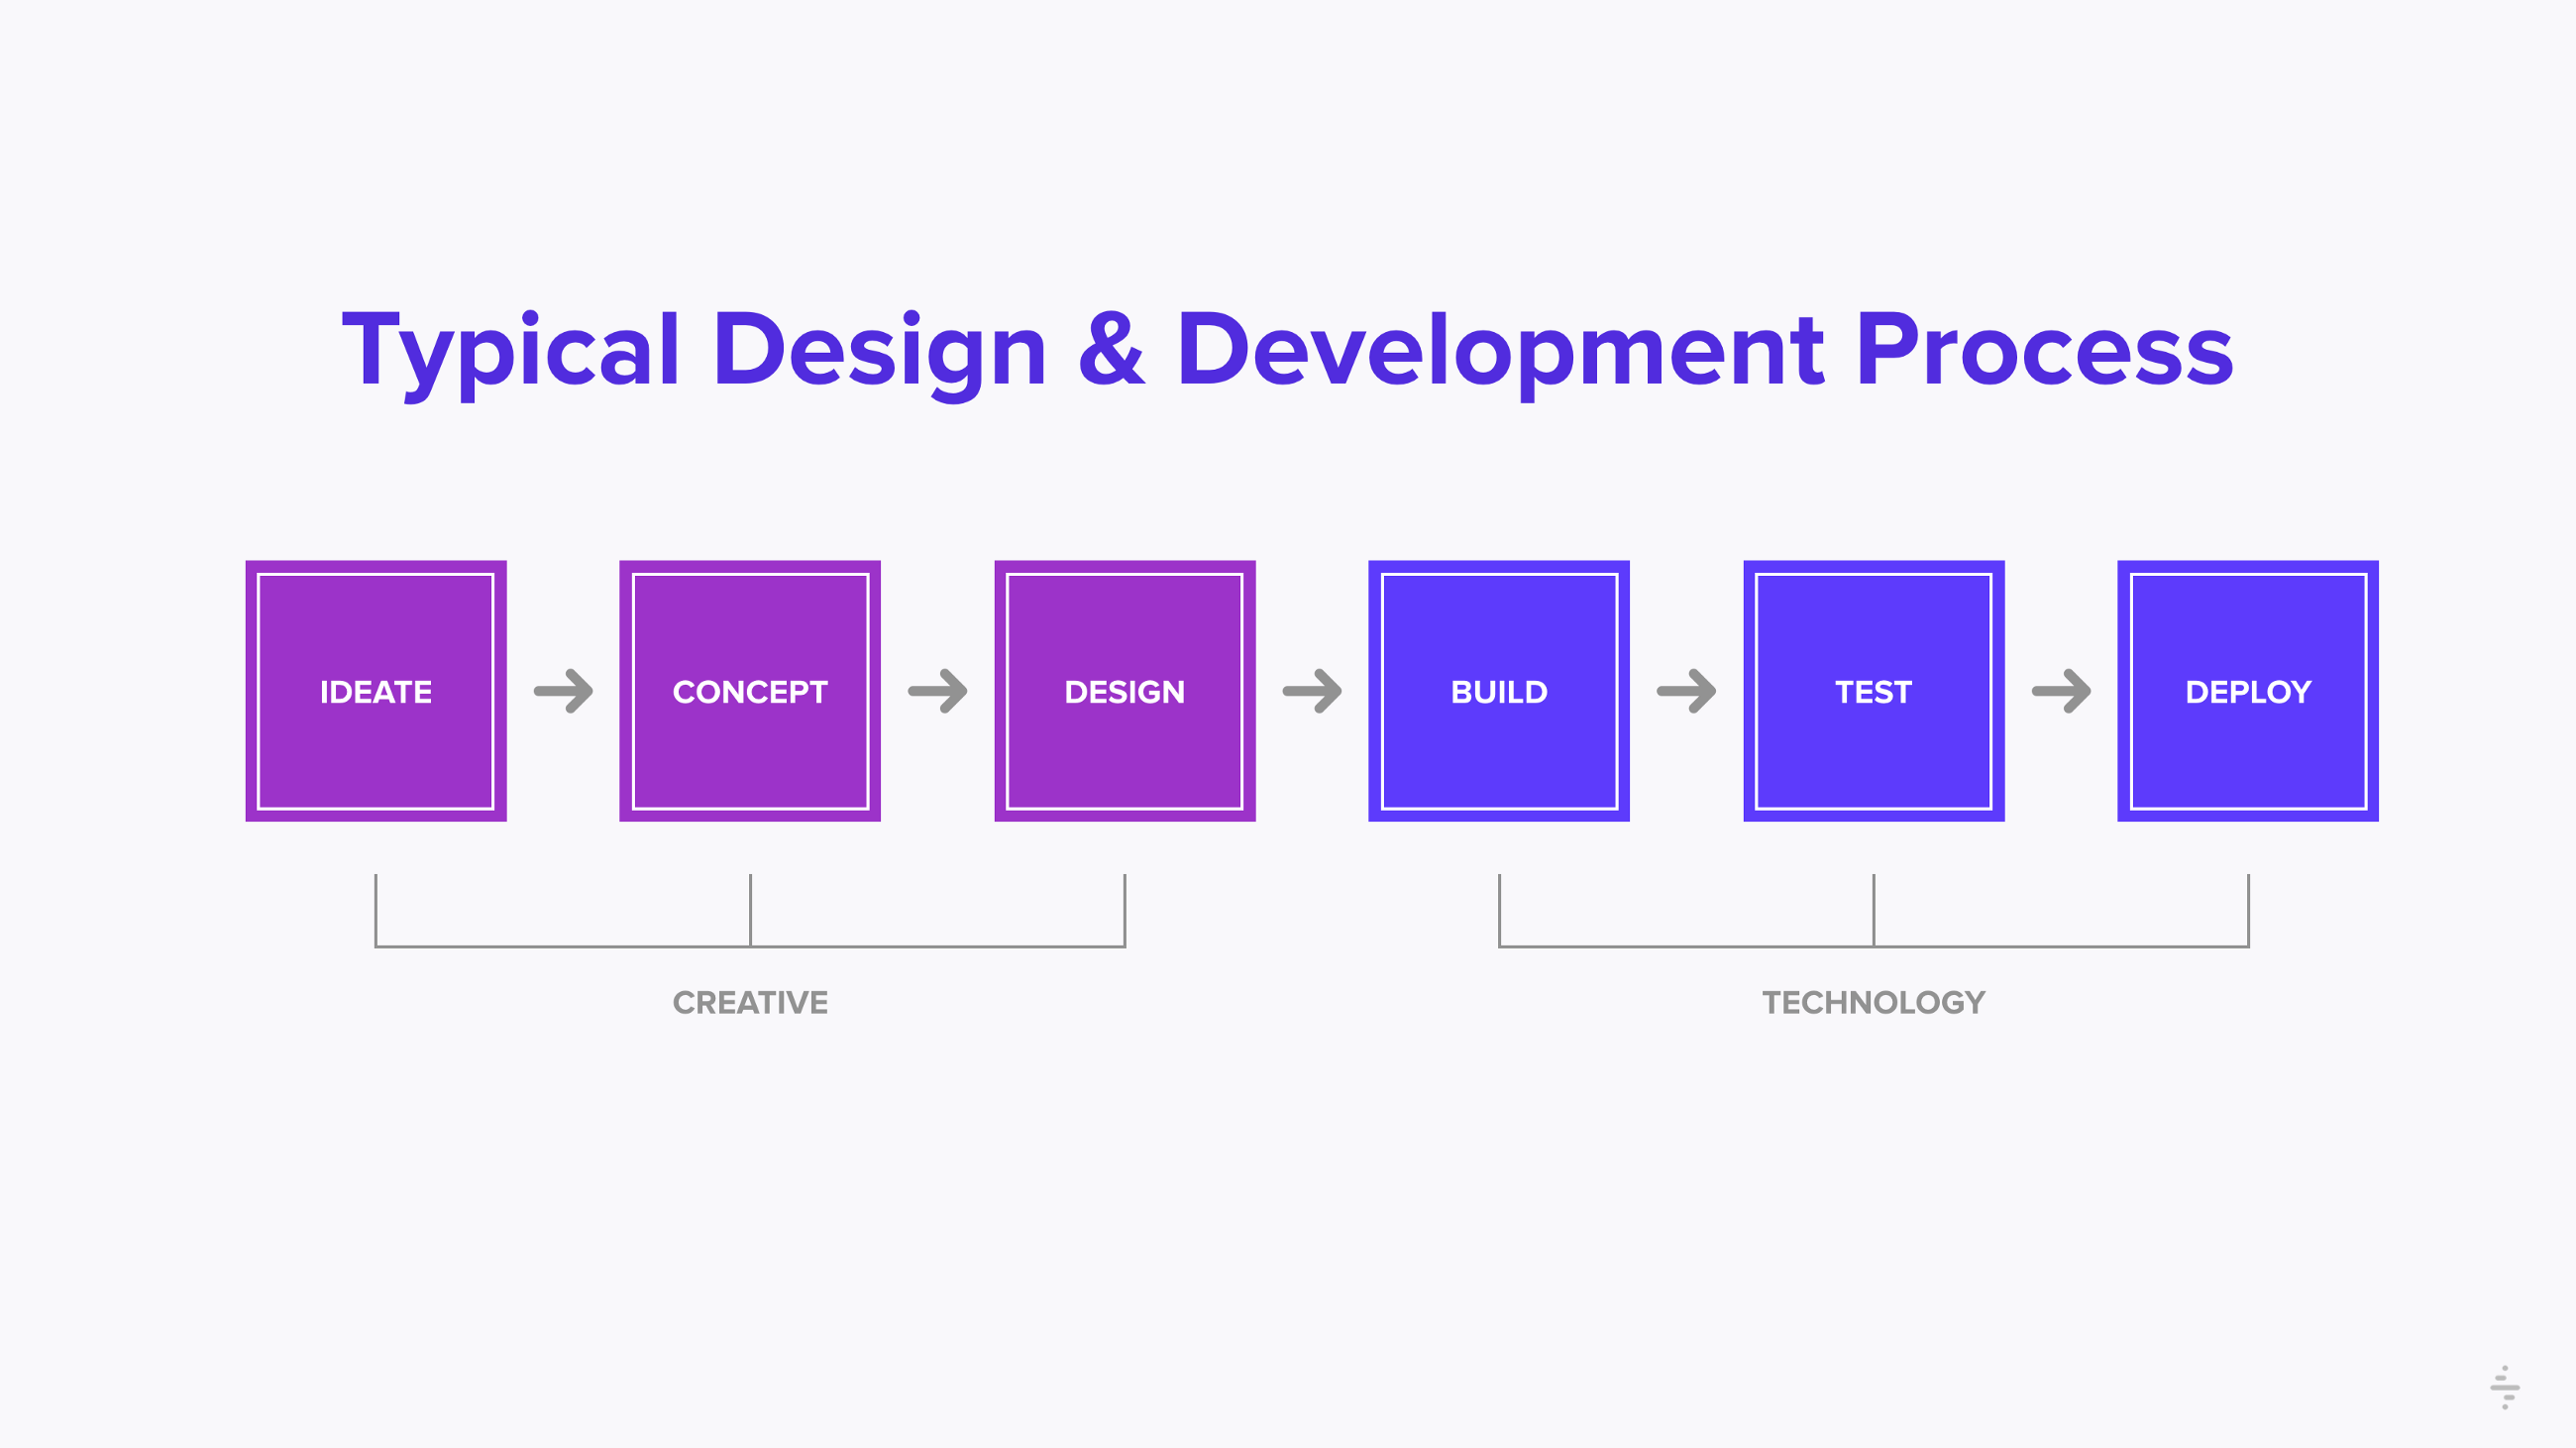 Typical Design and Development process